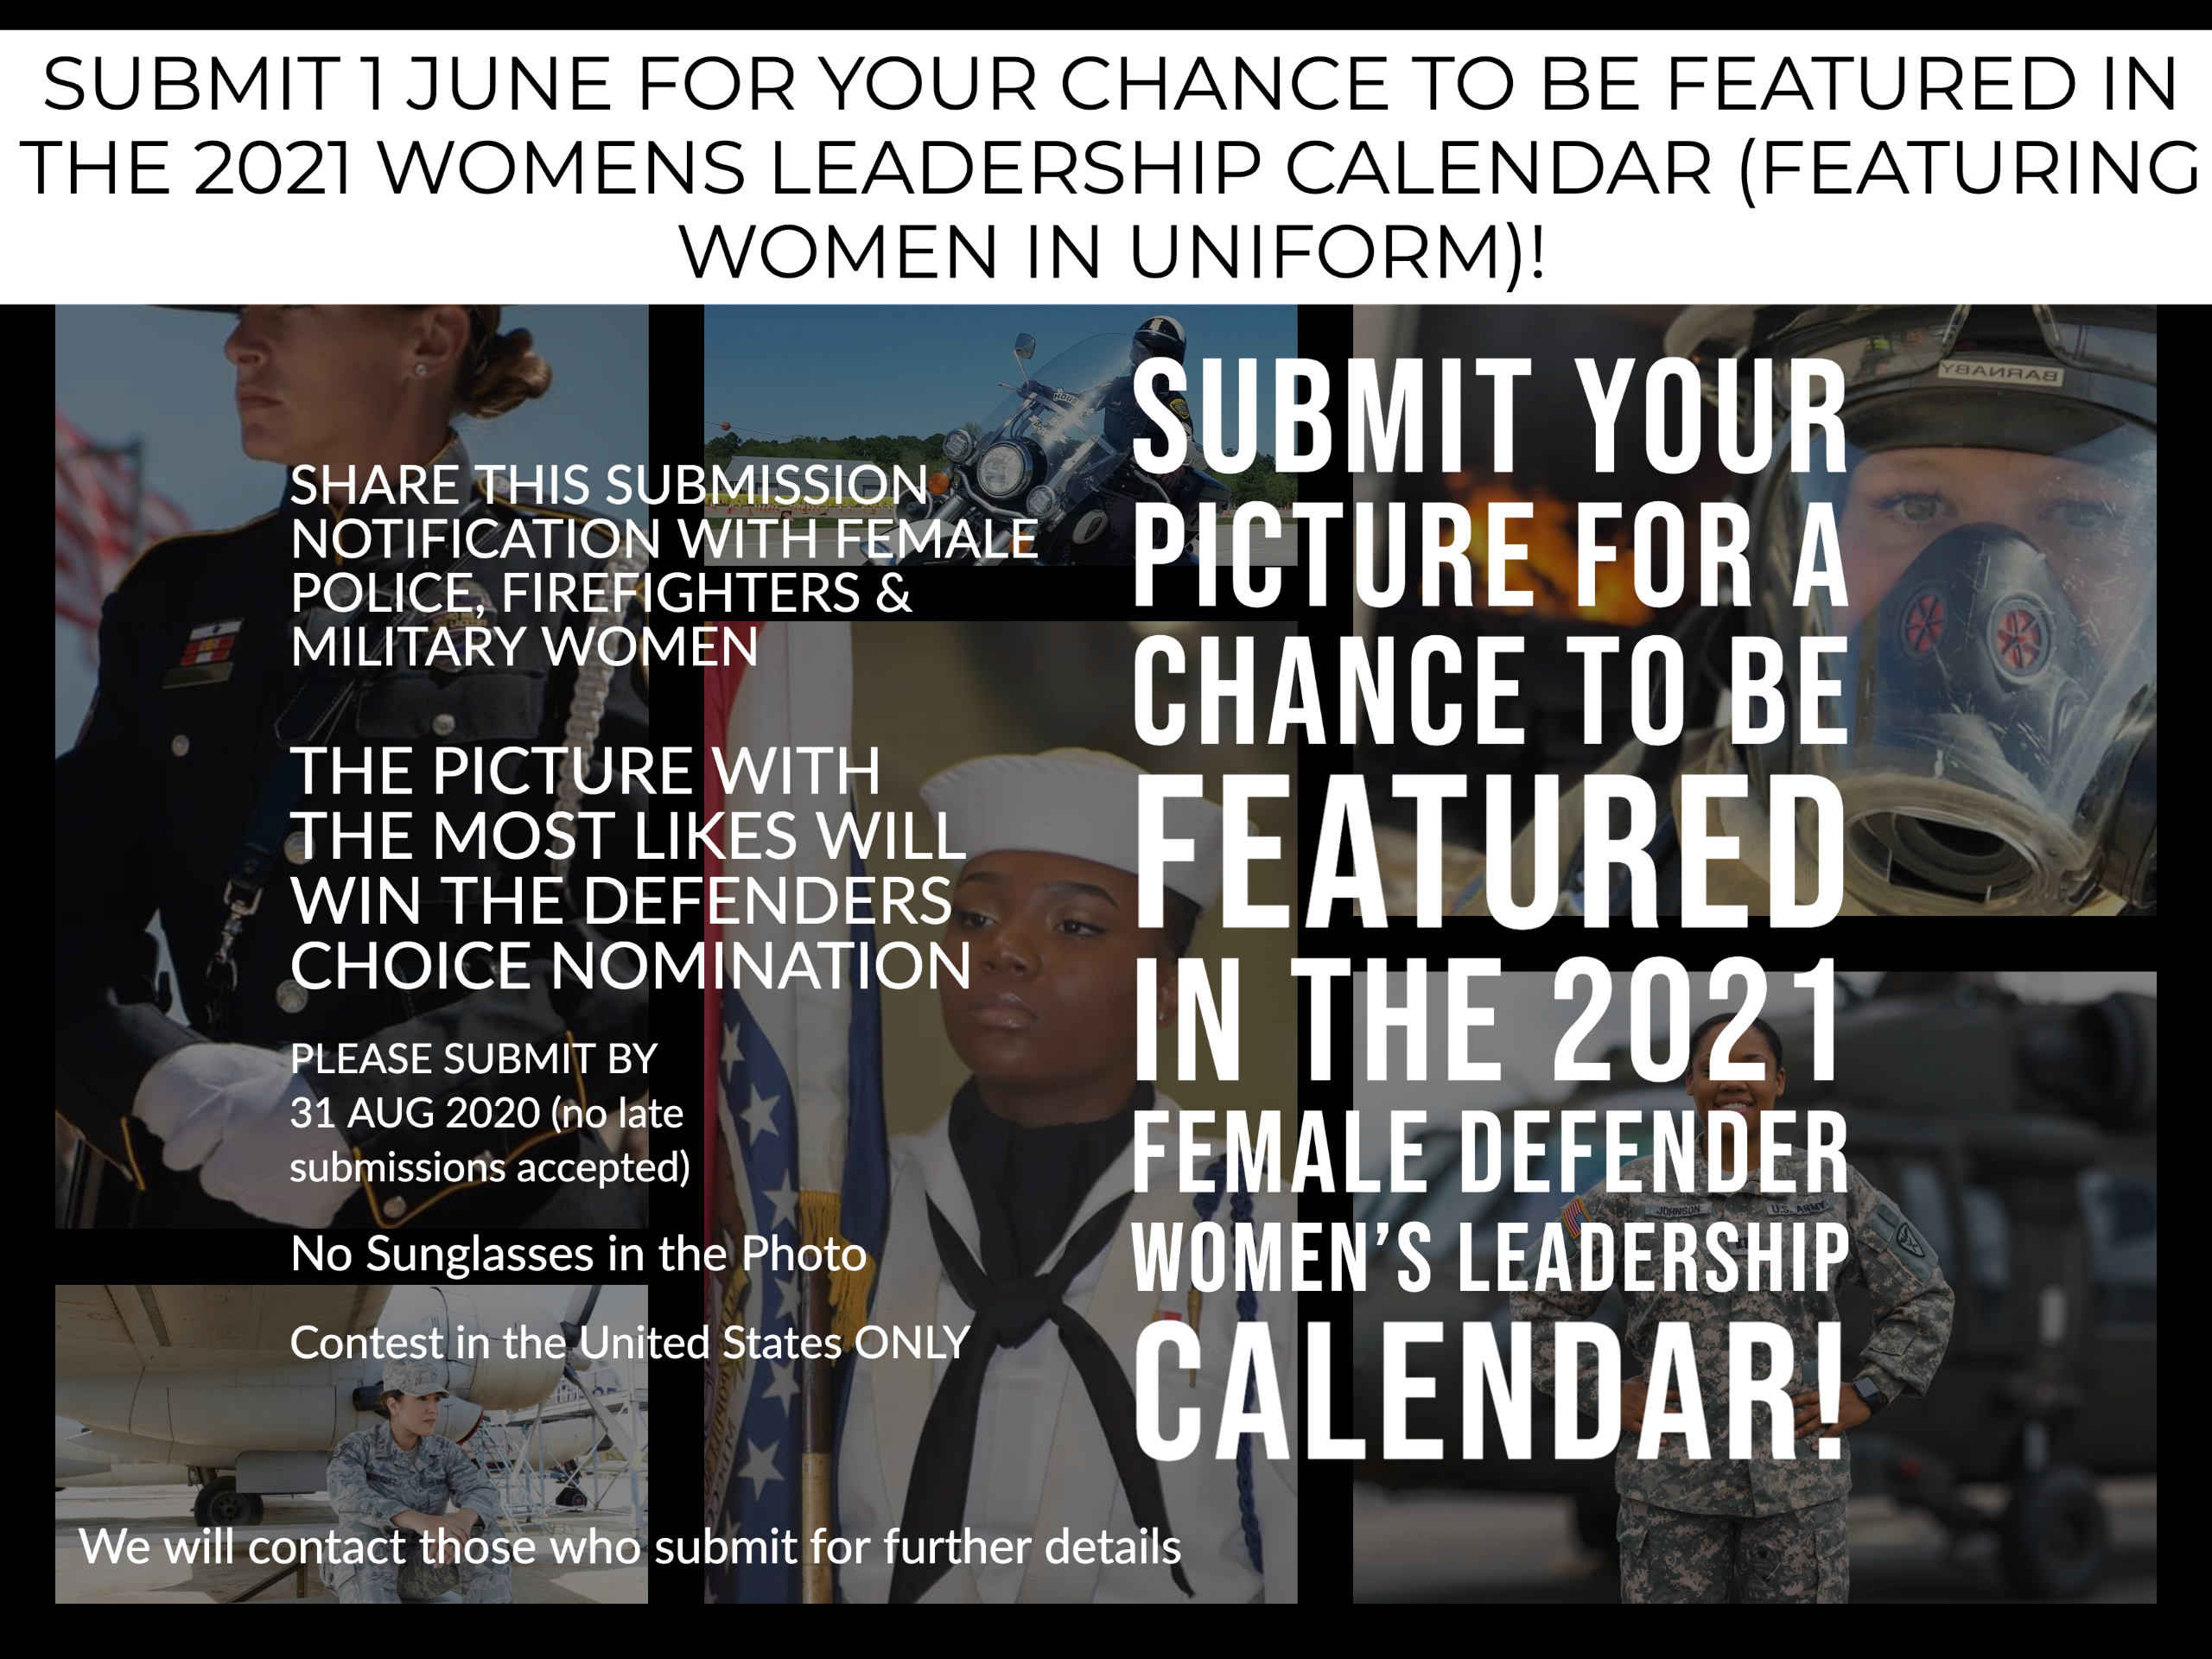 2021 Womens Leadership Calendar Copy (1) 2